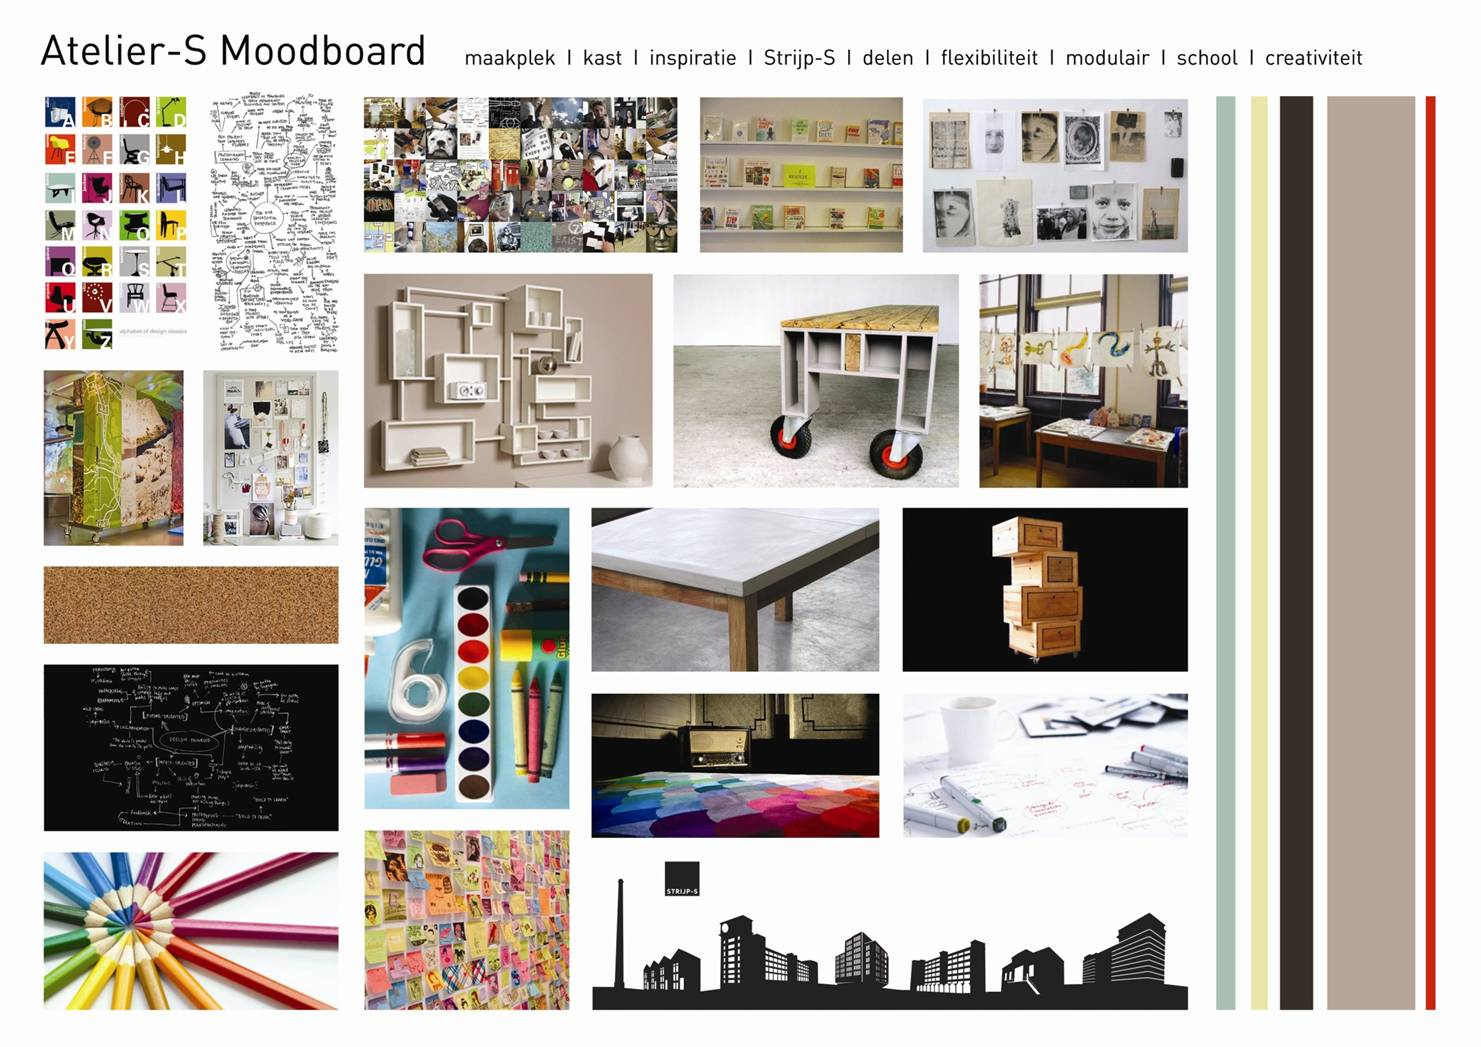 Atelier-S - Moodboard Concept